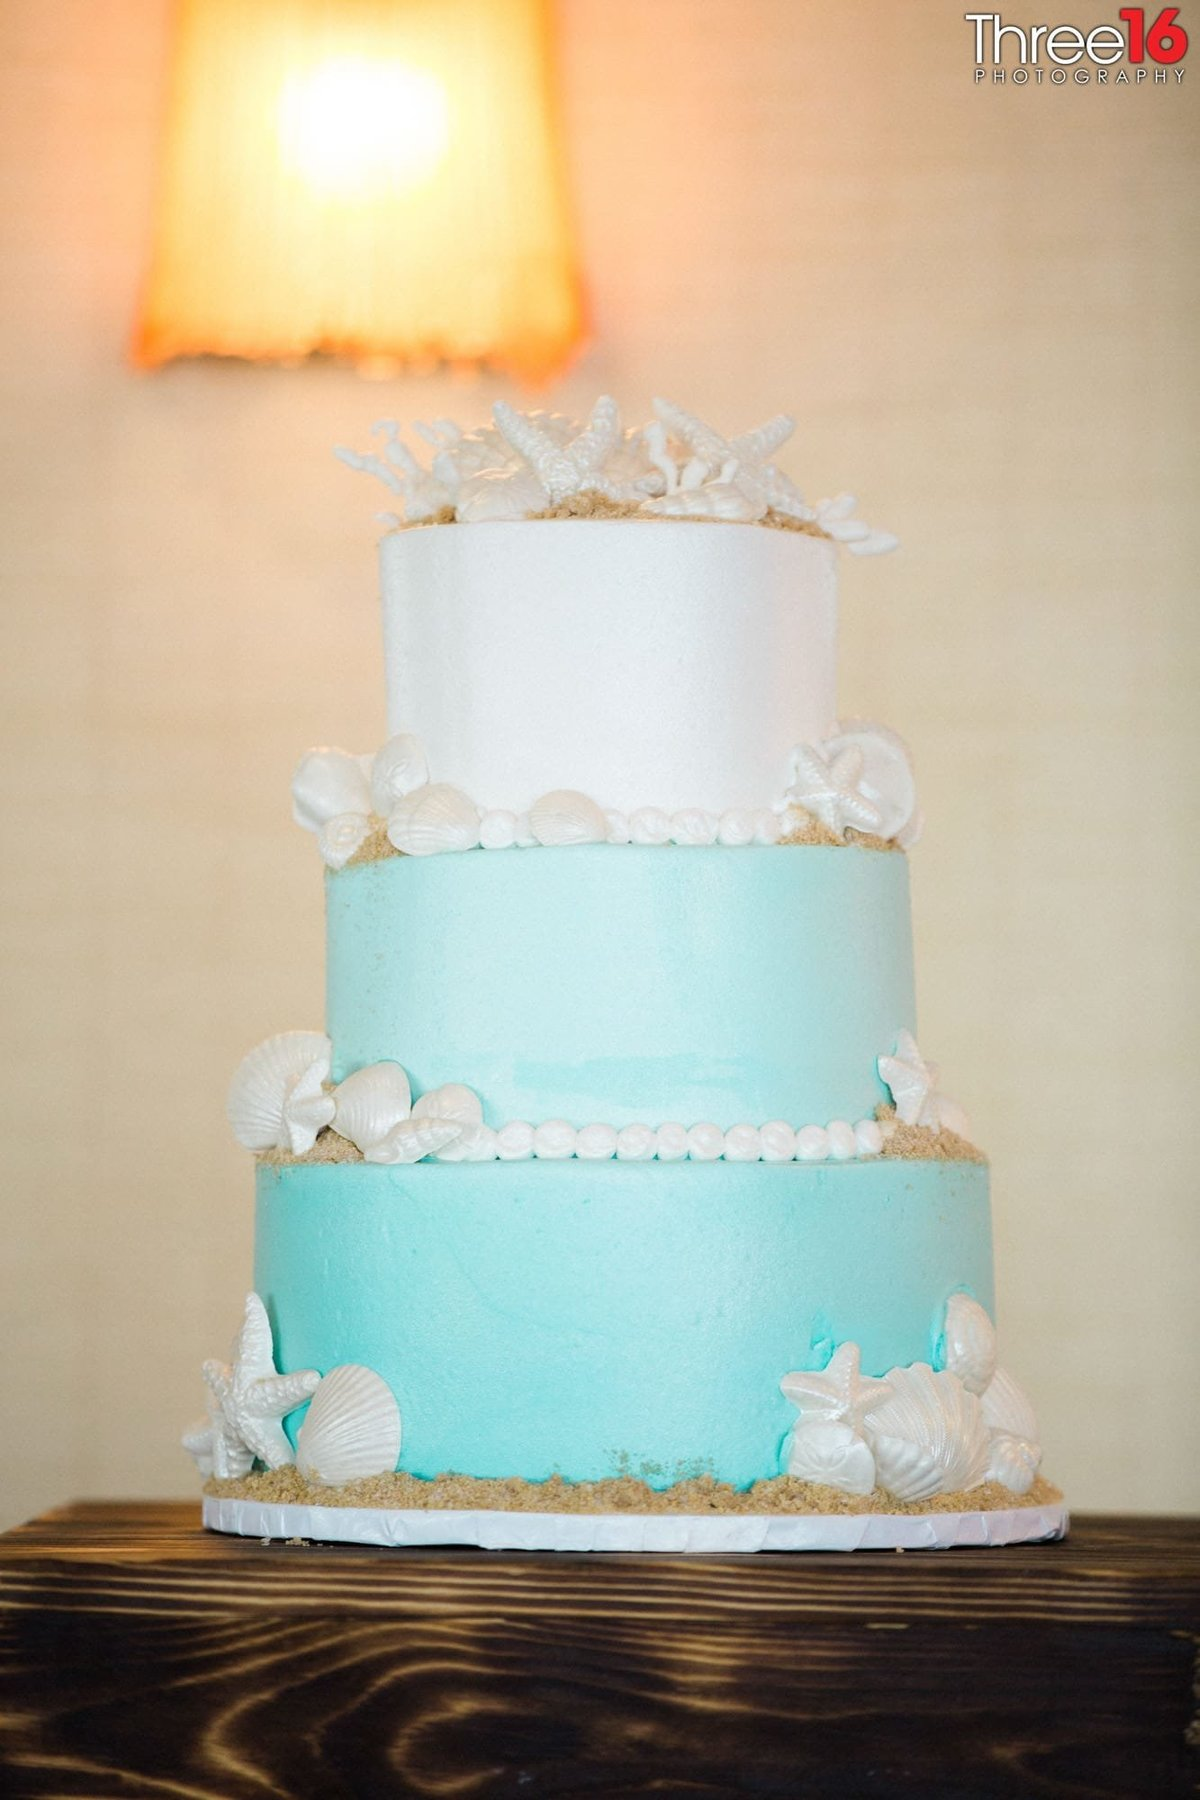 Lovely 3-tiered wedding cake